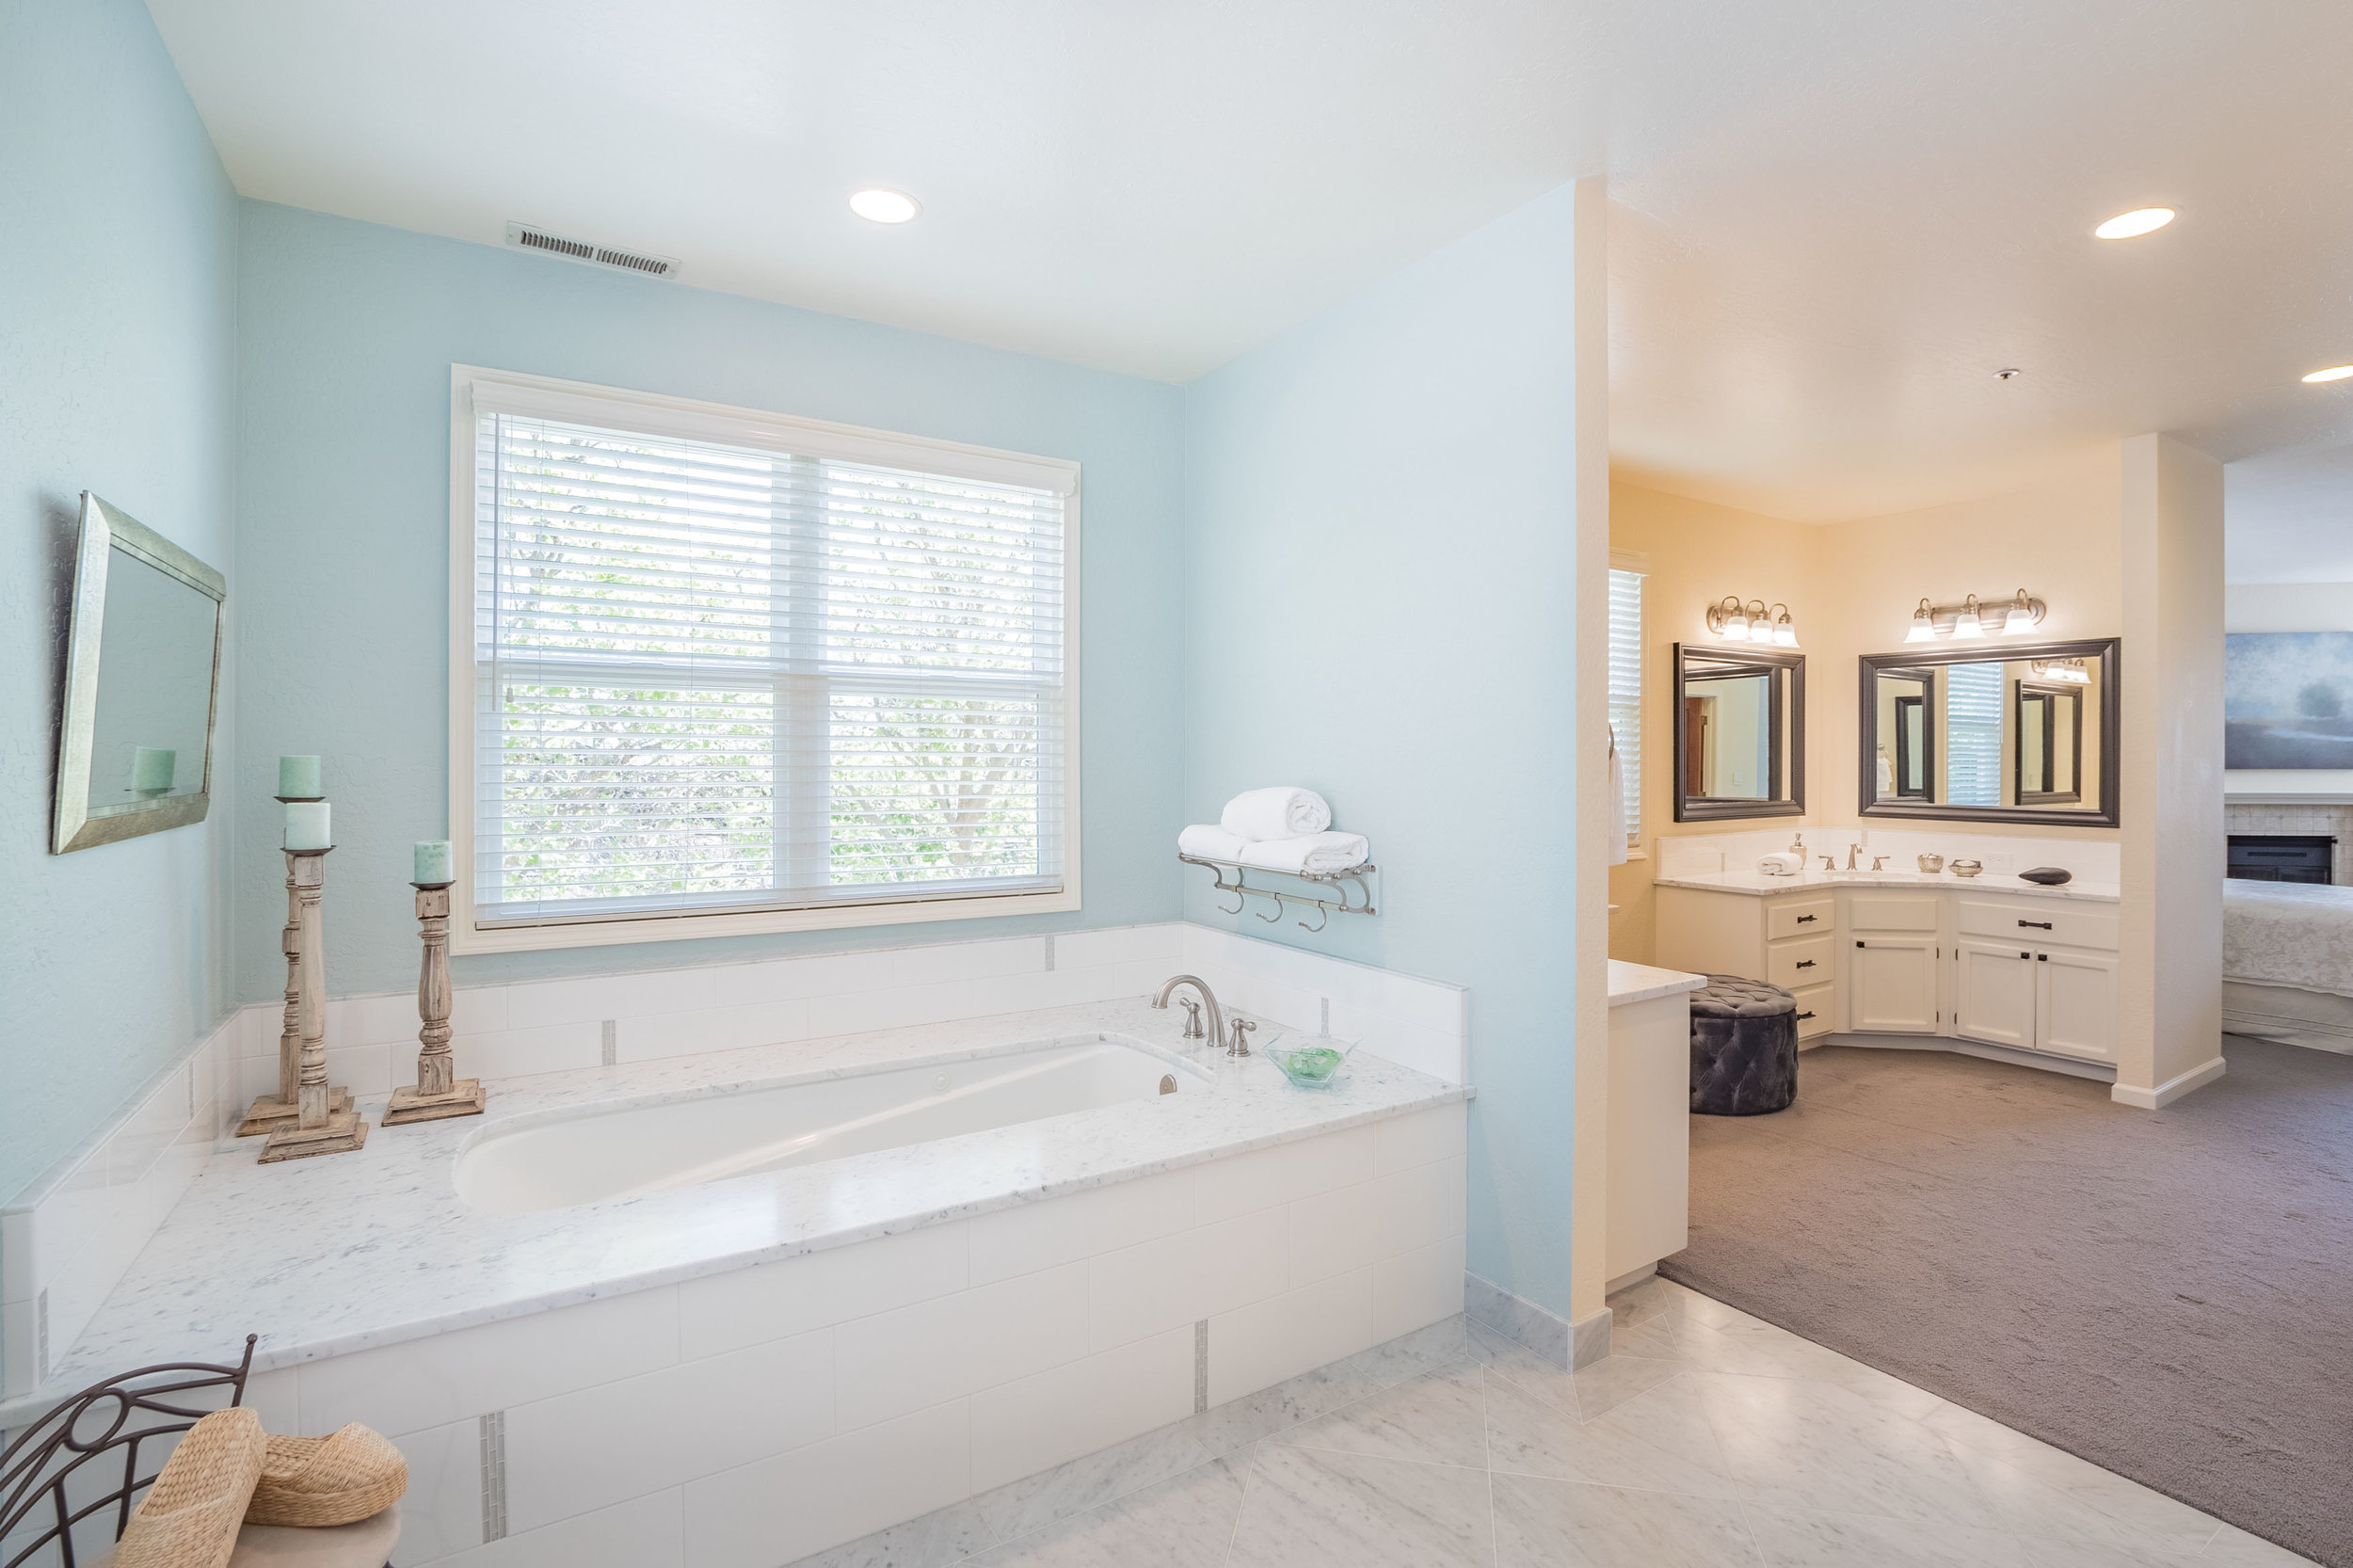 +3000 Sq. Ft. Remodeled Home Open Floor Plan In Westside Large G